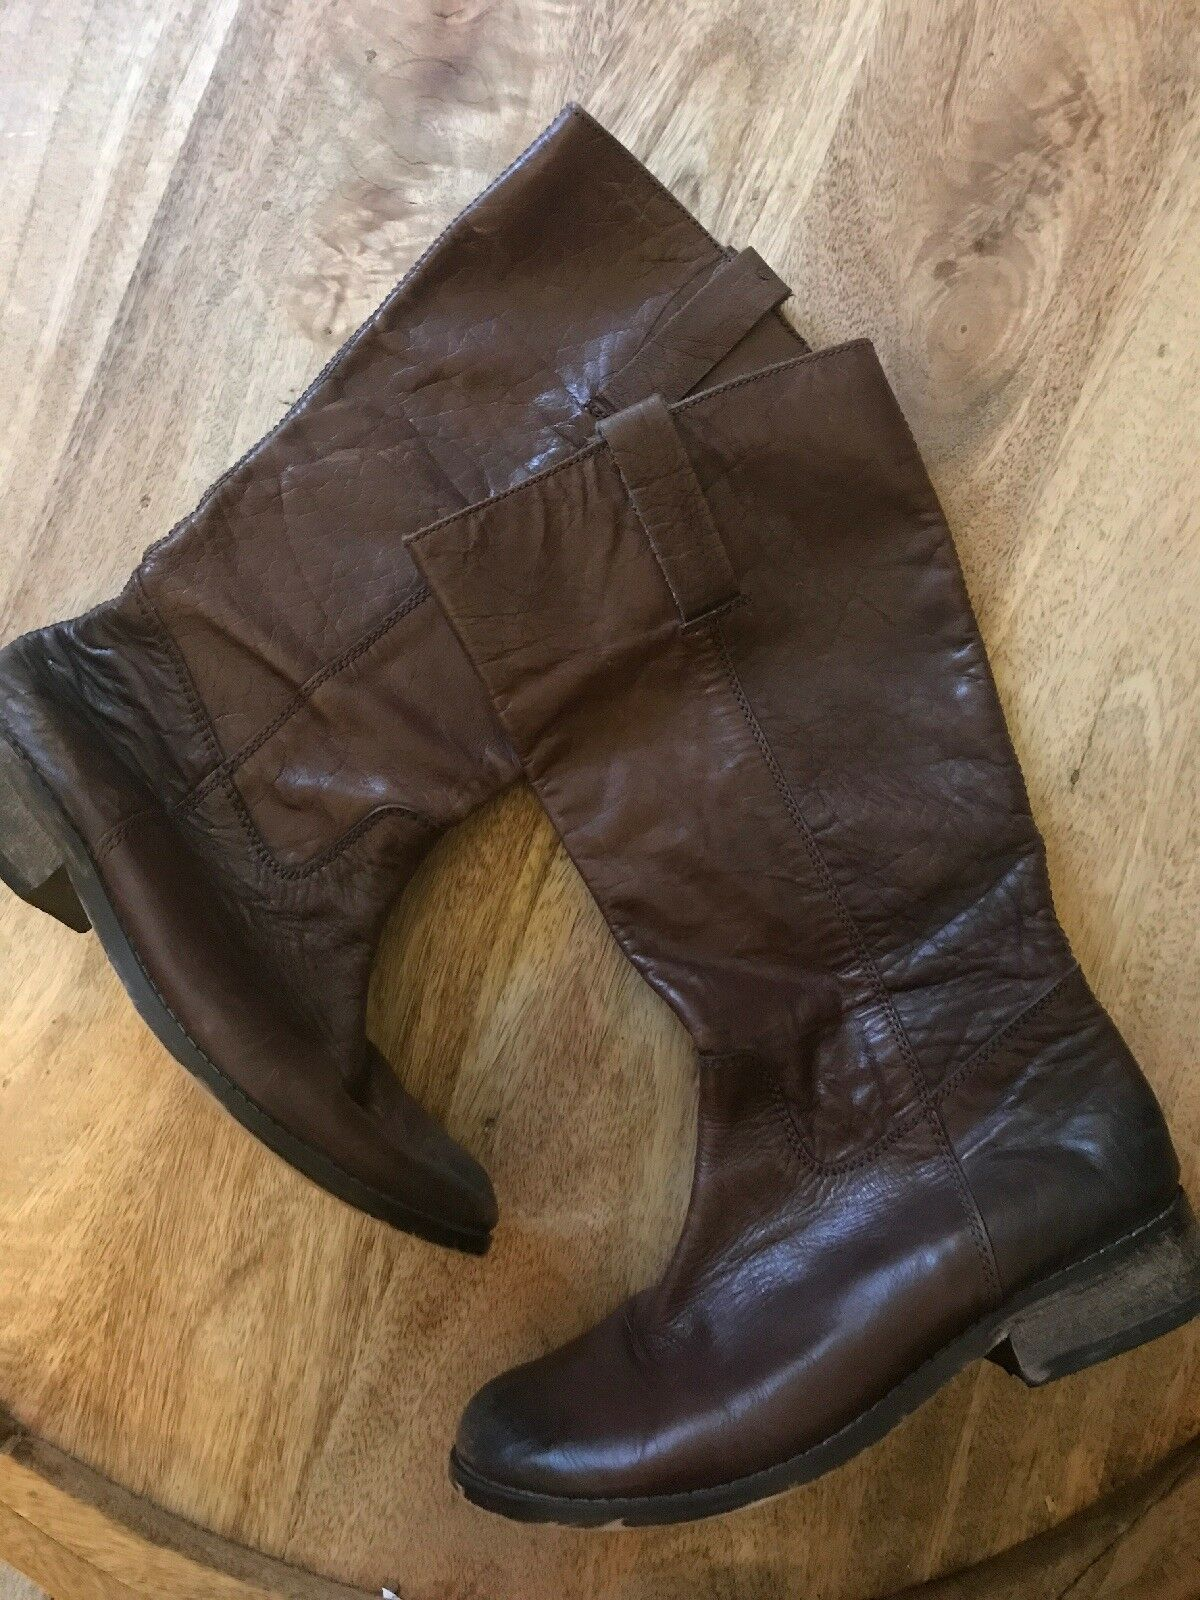 MIA tall Distressed Brown Leather Boots--7.5